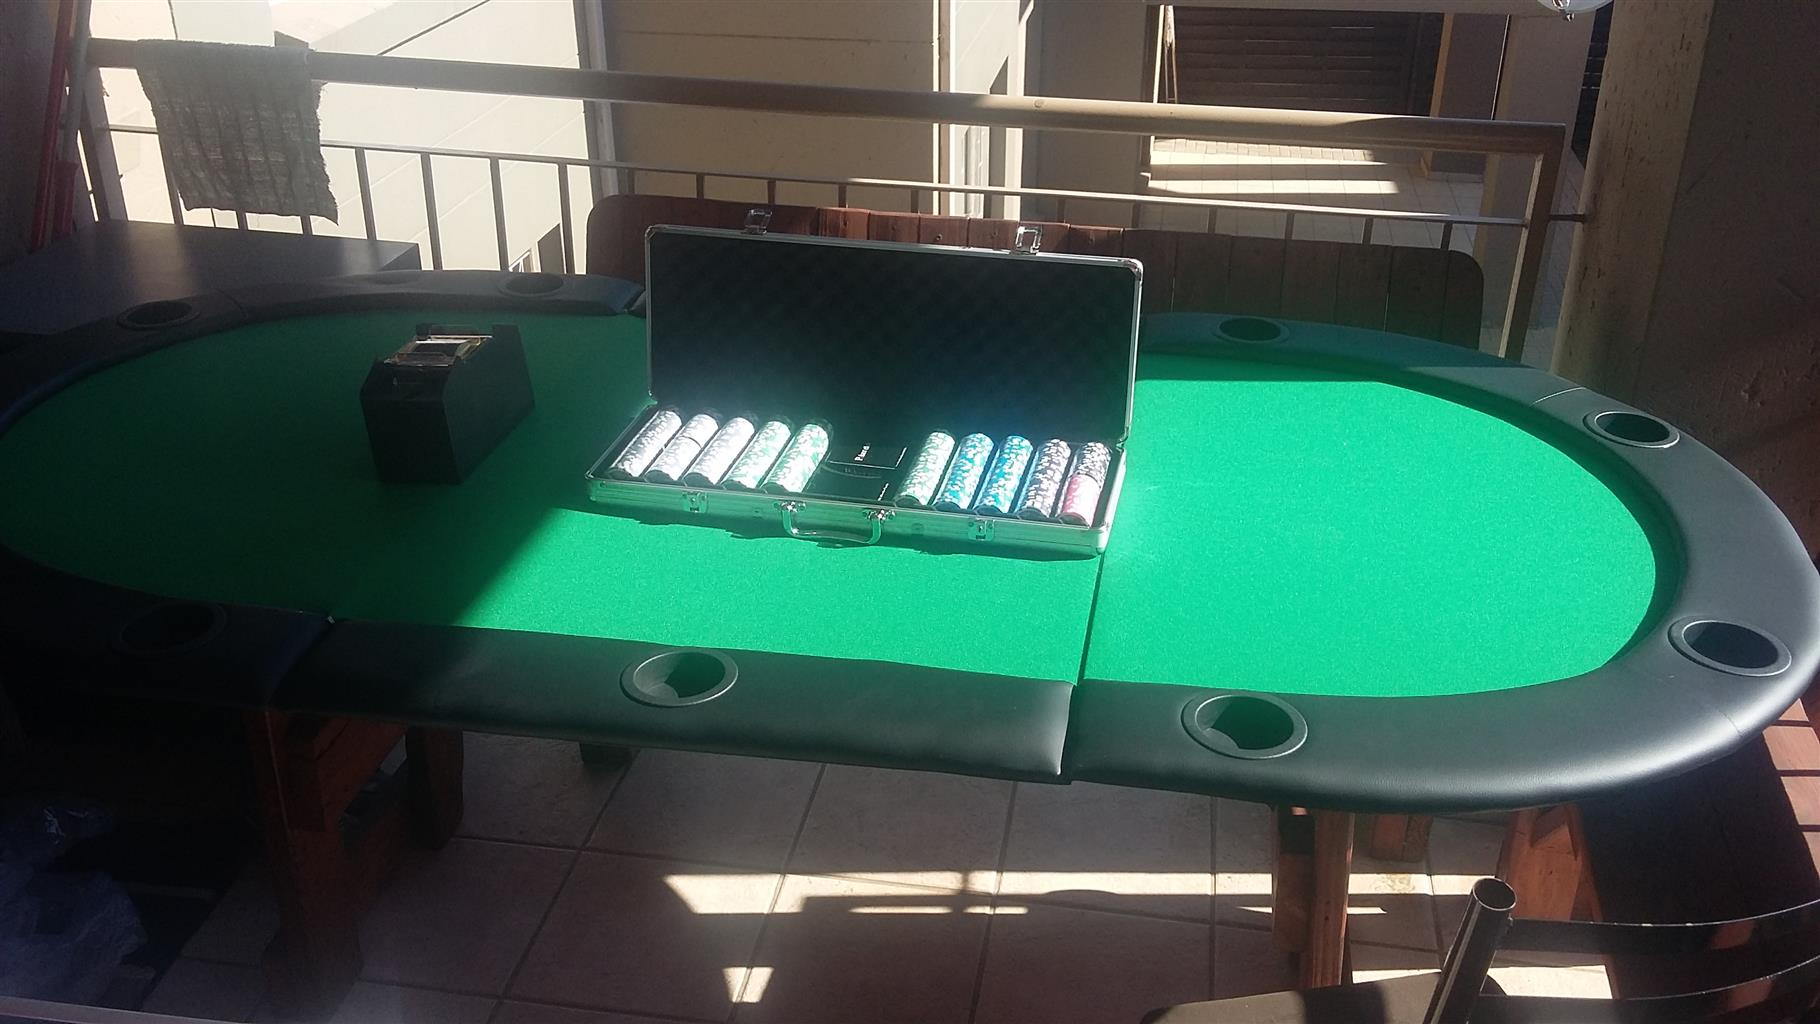 Full poker set for 8